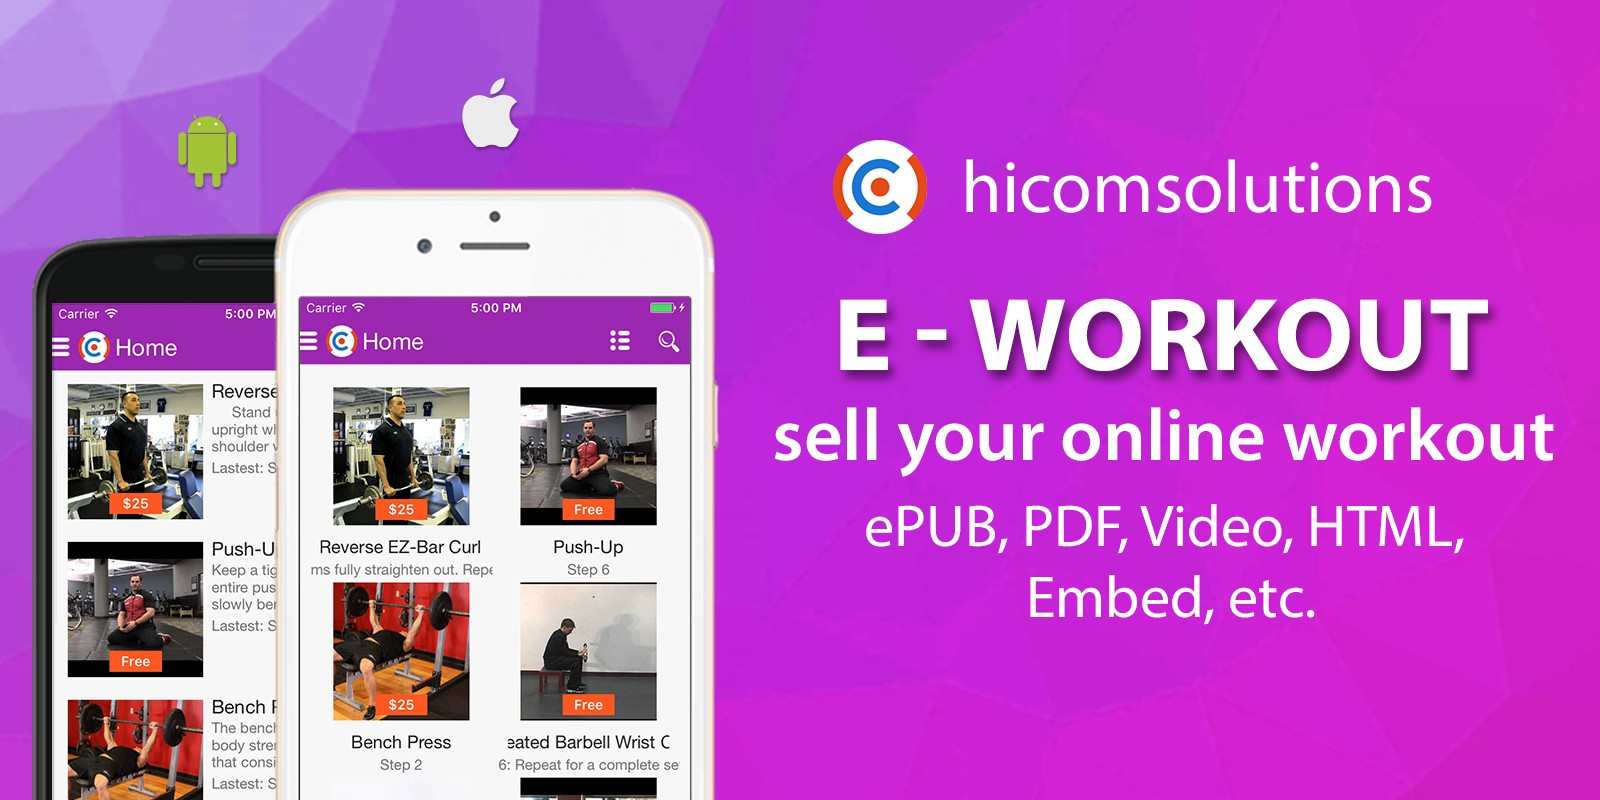 E-Workout - Sell Your Online Workout iOS App